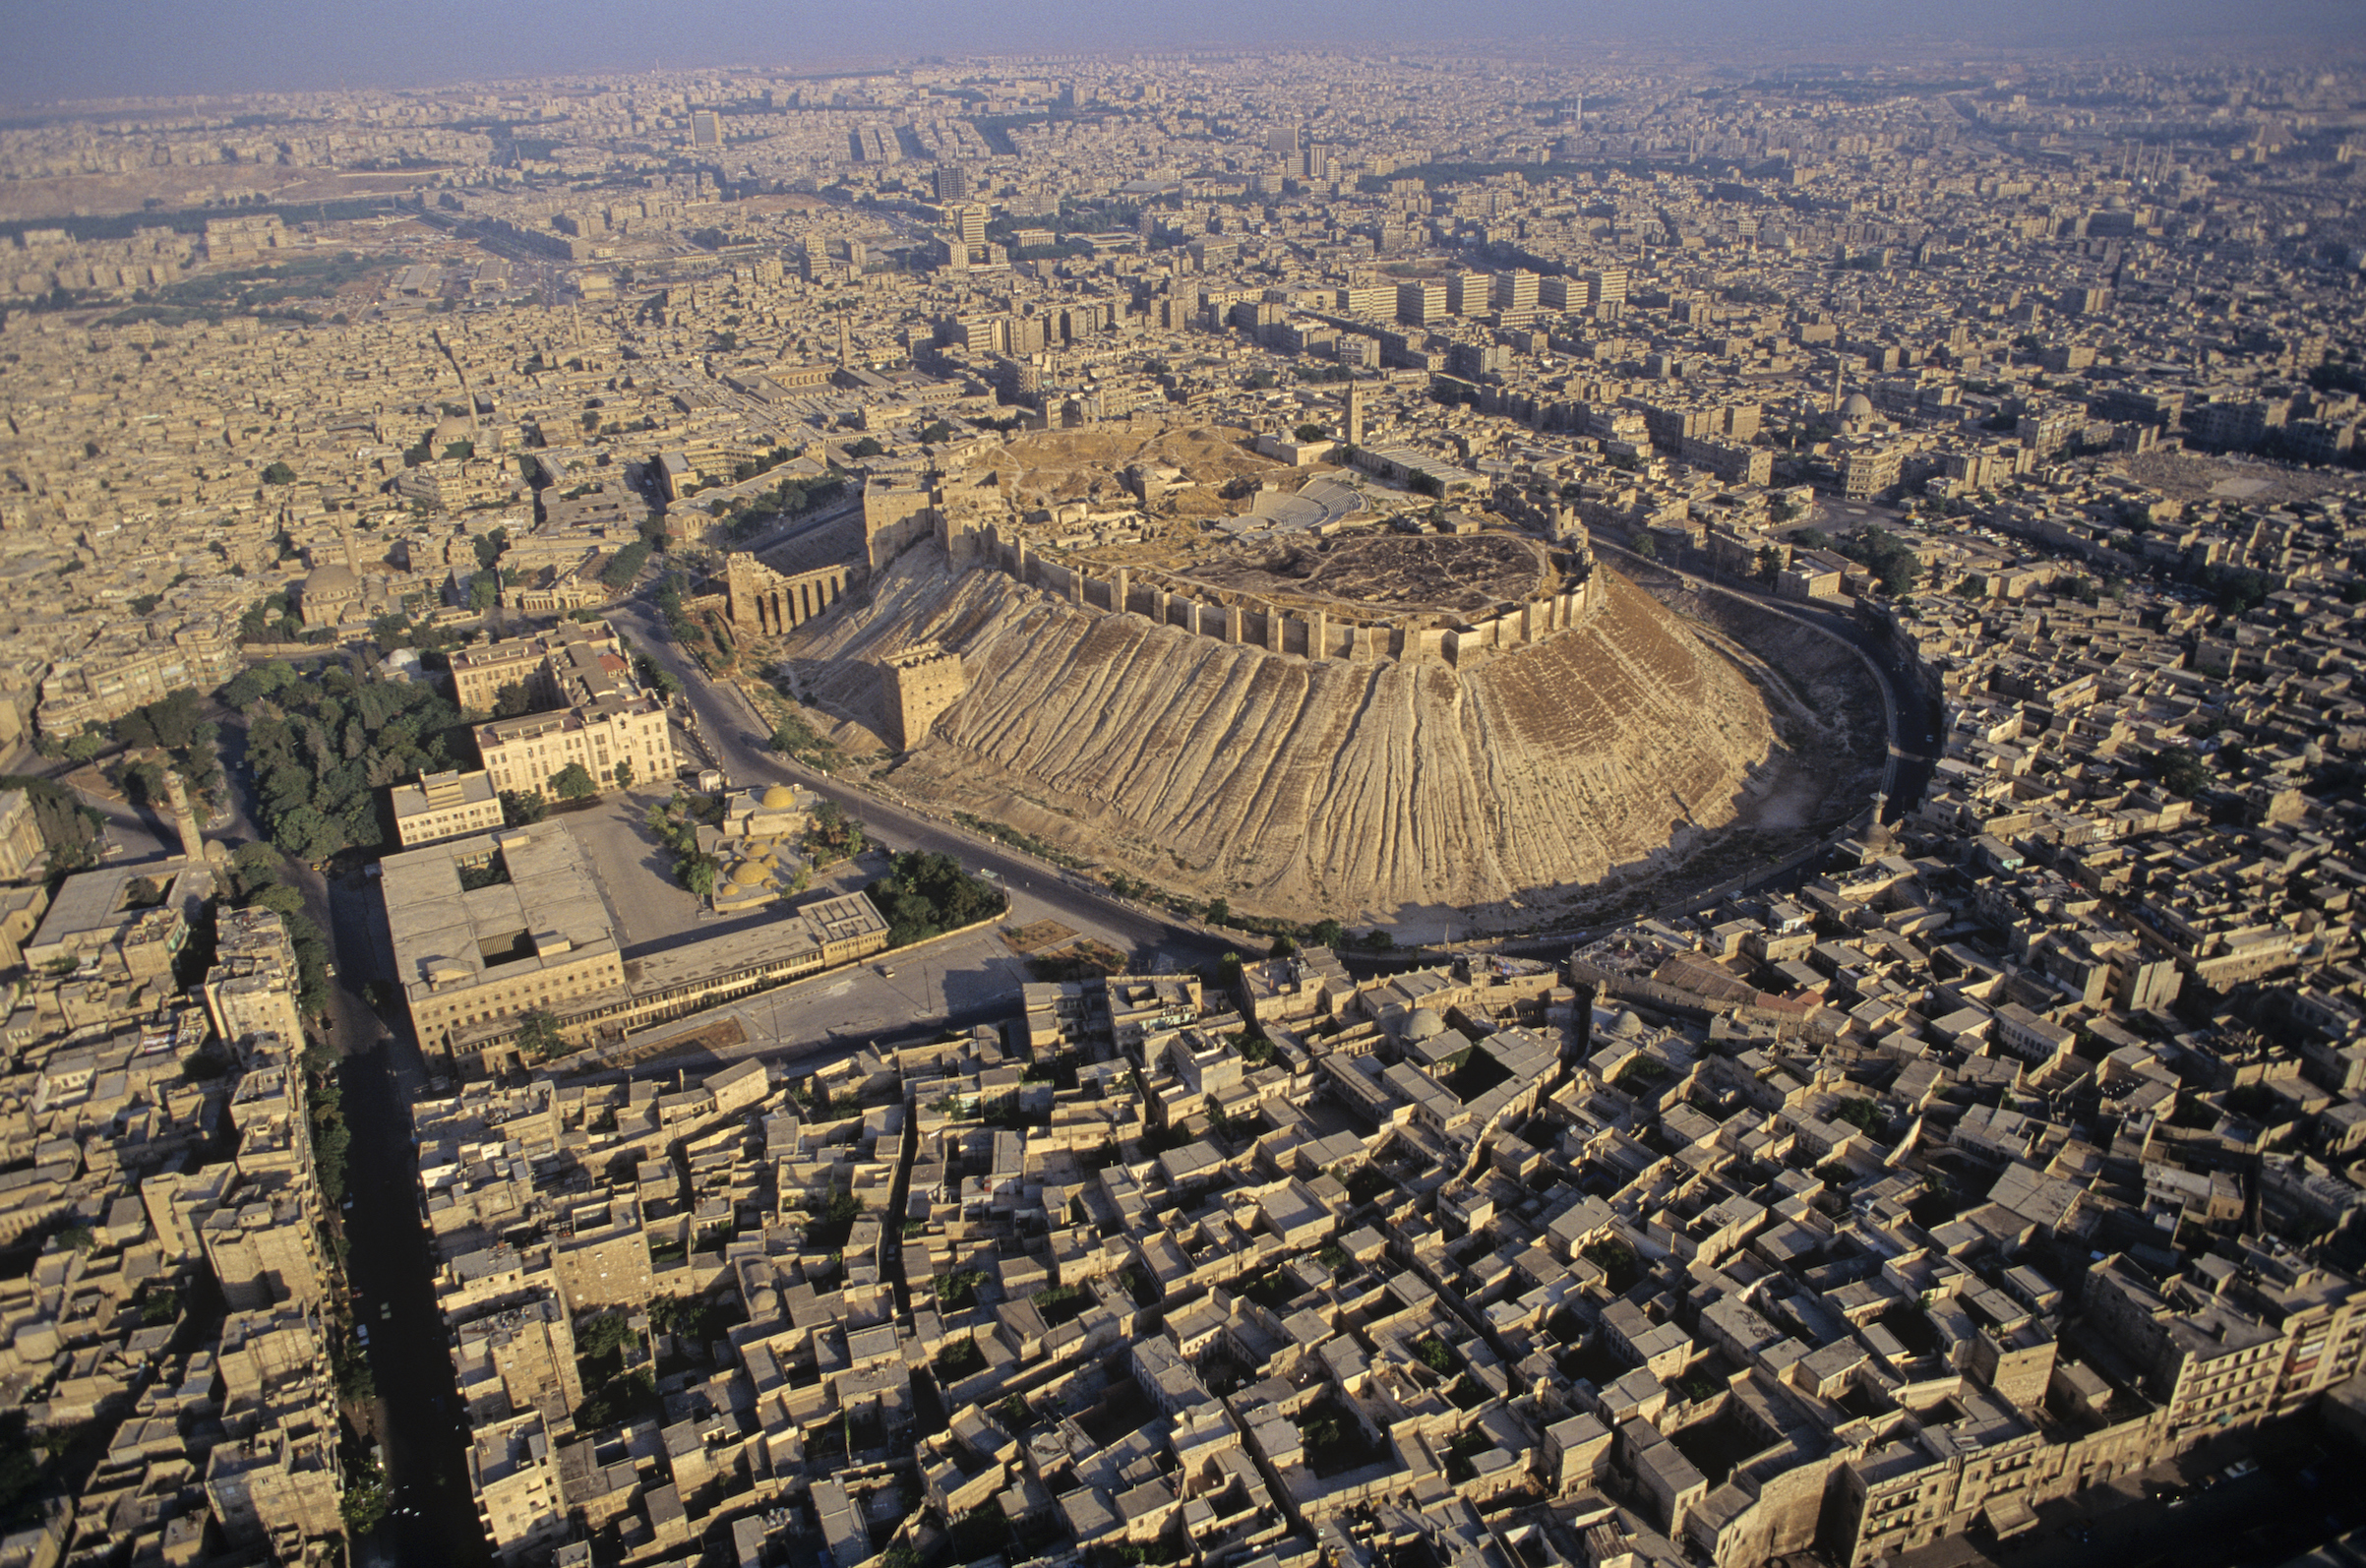 Aerial view of the citadel in the ancient city of Aleppo, Syria